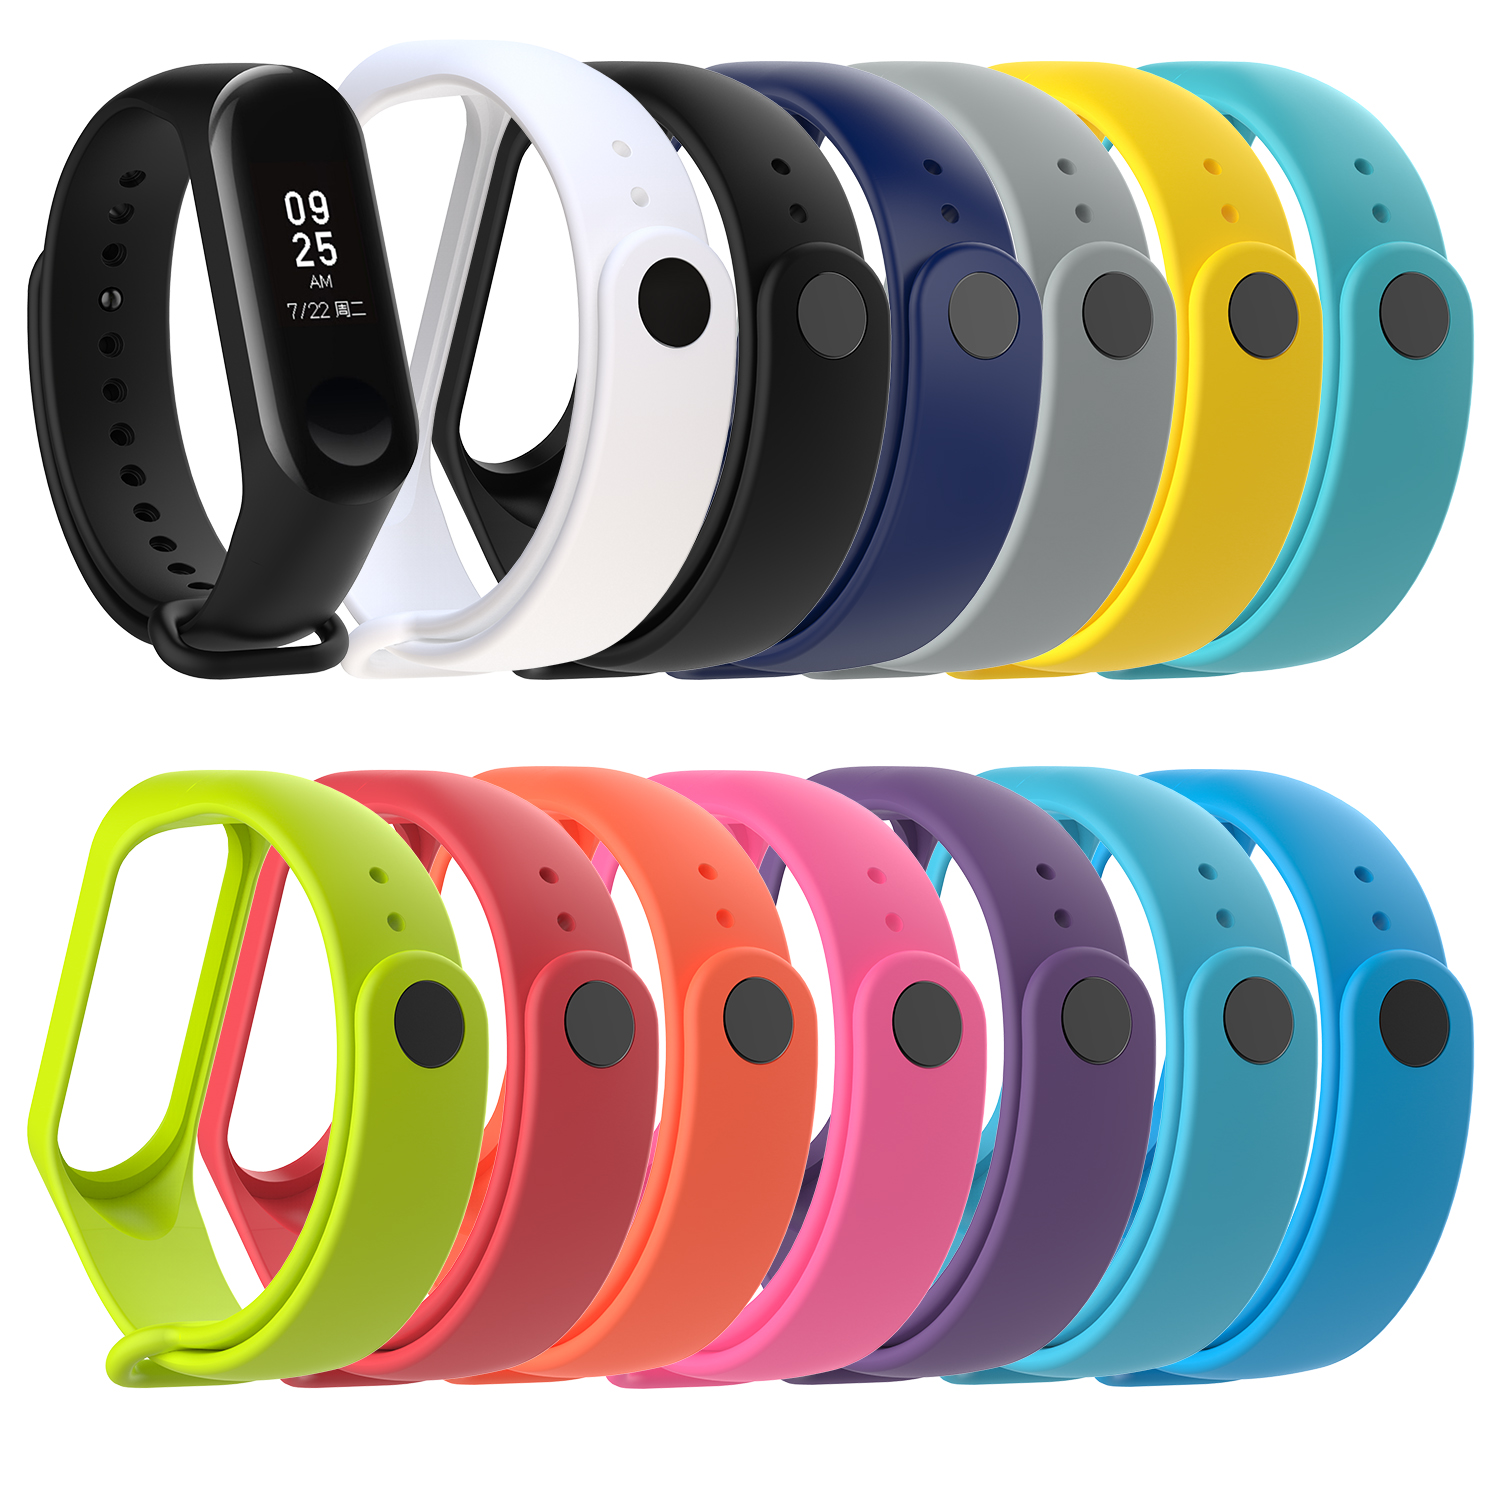 Multicolor Silicone Band Replacement For Xiaomi Mi Band 4 3 Strap Bracelet Wristband Straps Health Sleep